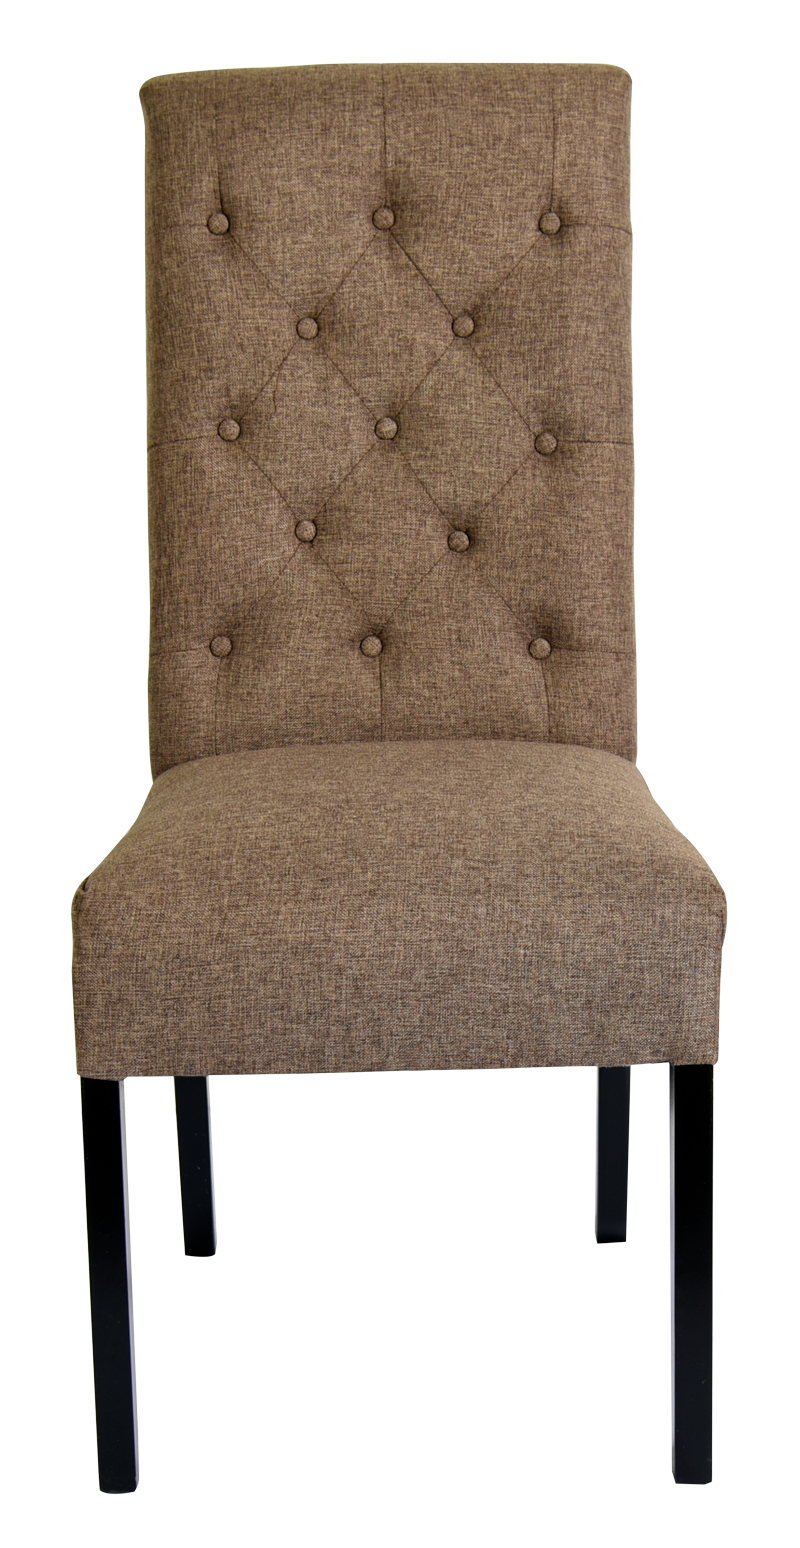 Melia tufted dining chair dining chair for sale button tufted dining chair - Tufted dining room chairs ...